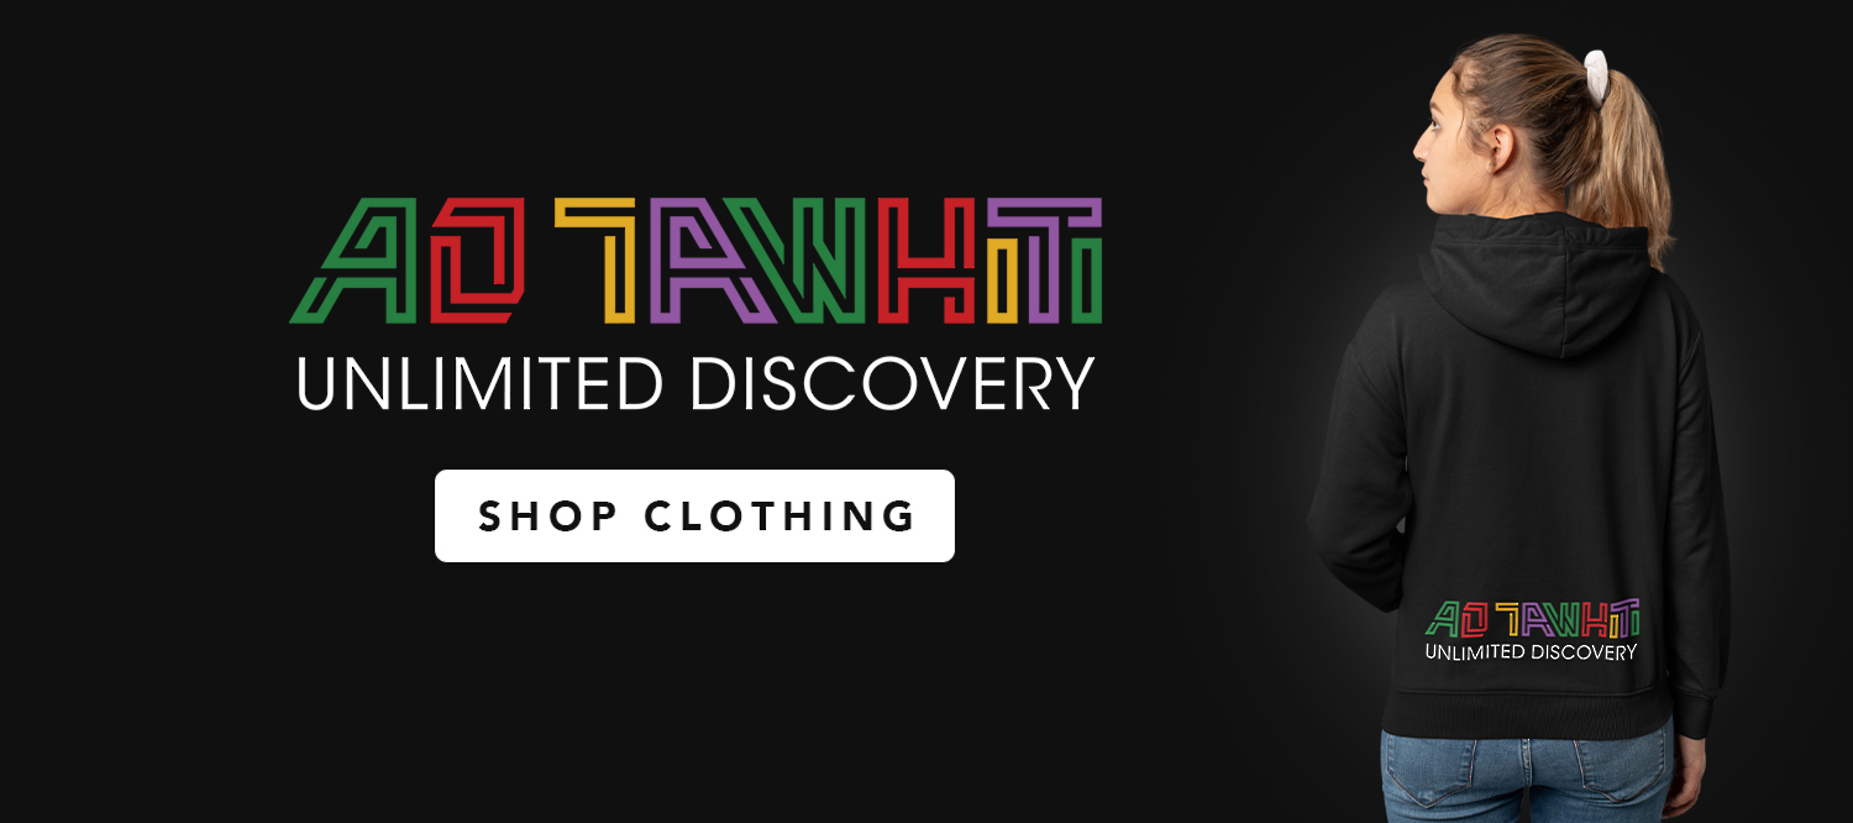 Ao Tawhiti Clothing with girl in hoodie